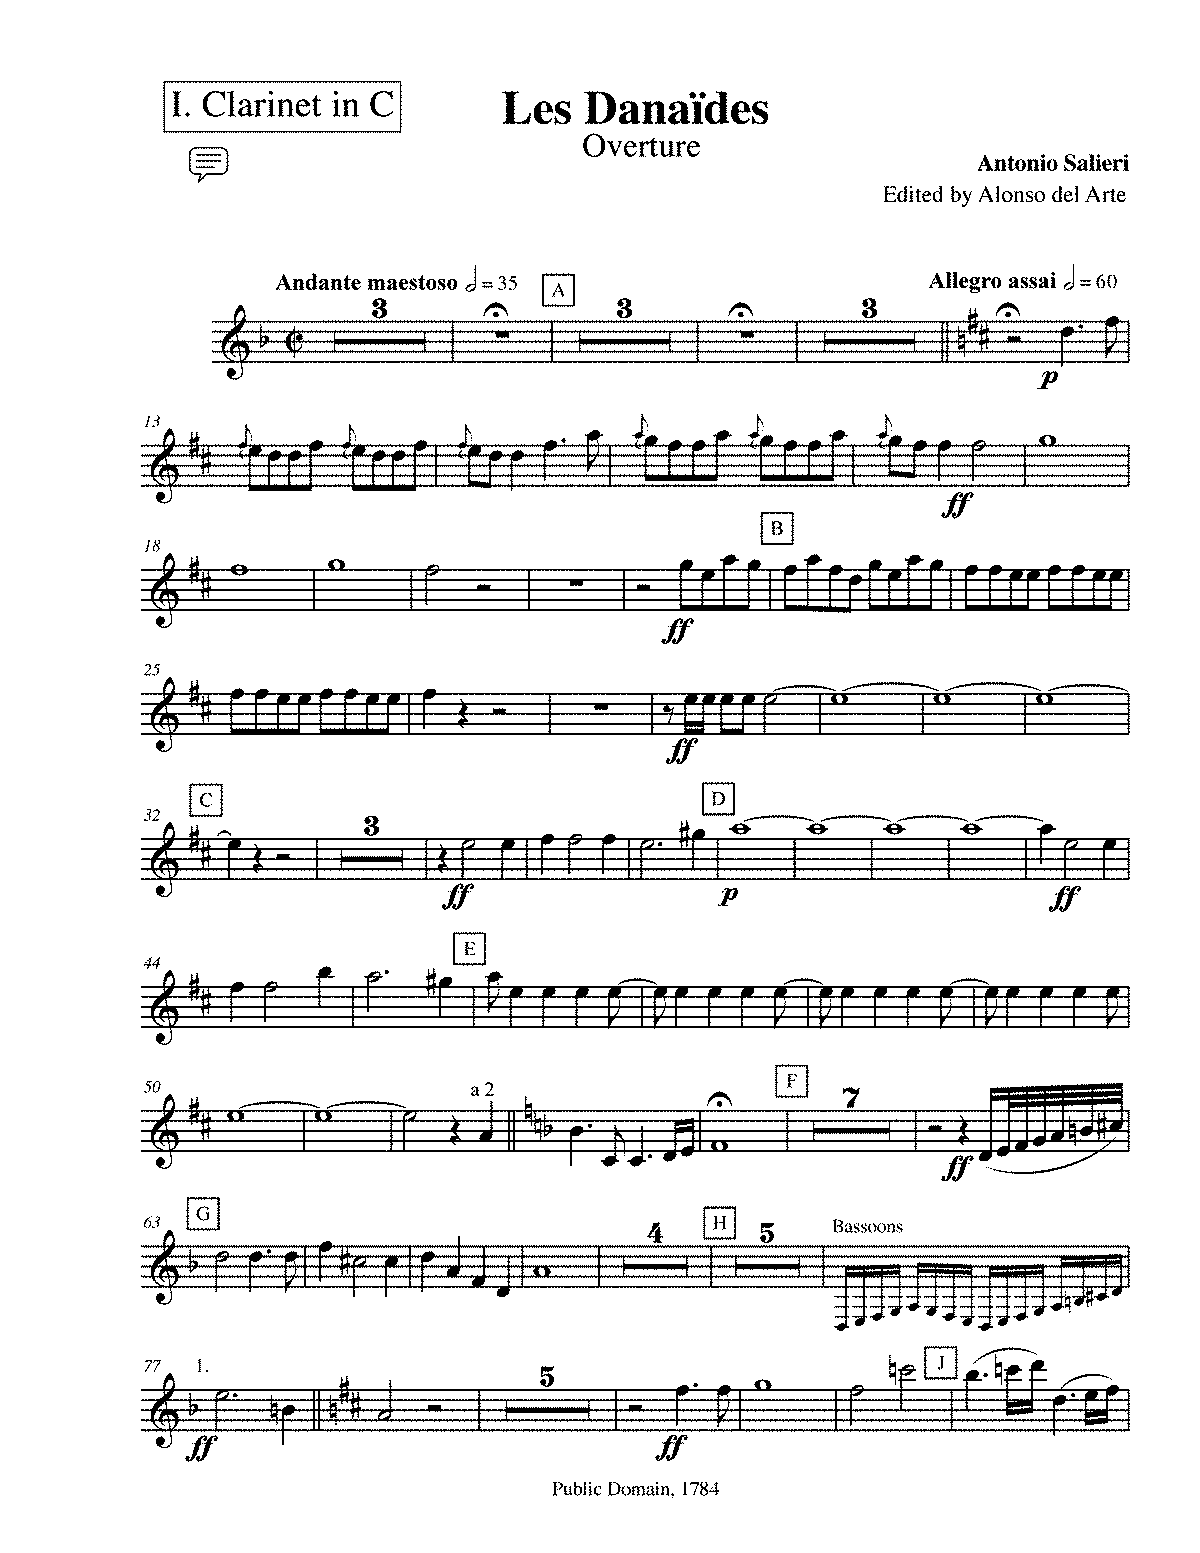 PMLP05030-Danaides wArchaicTransps - I. Clarinet in C.pdf